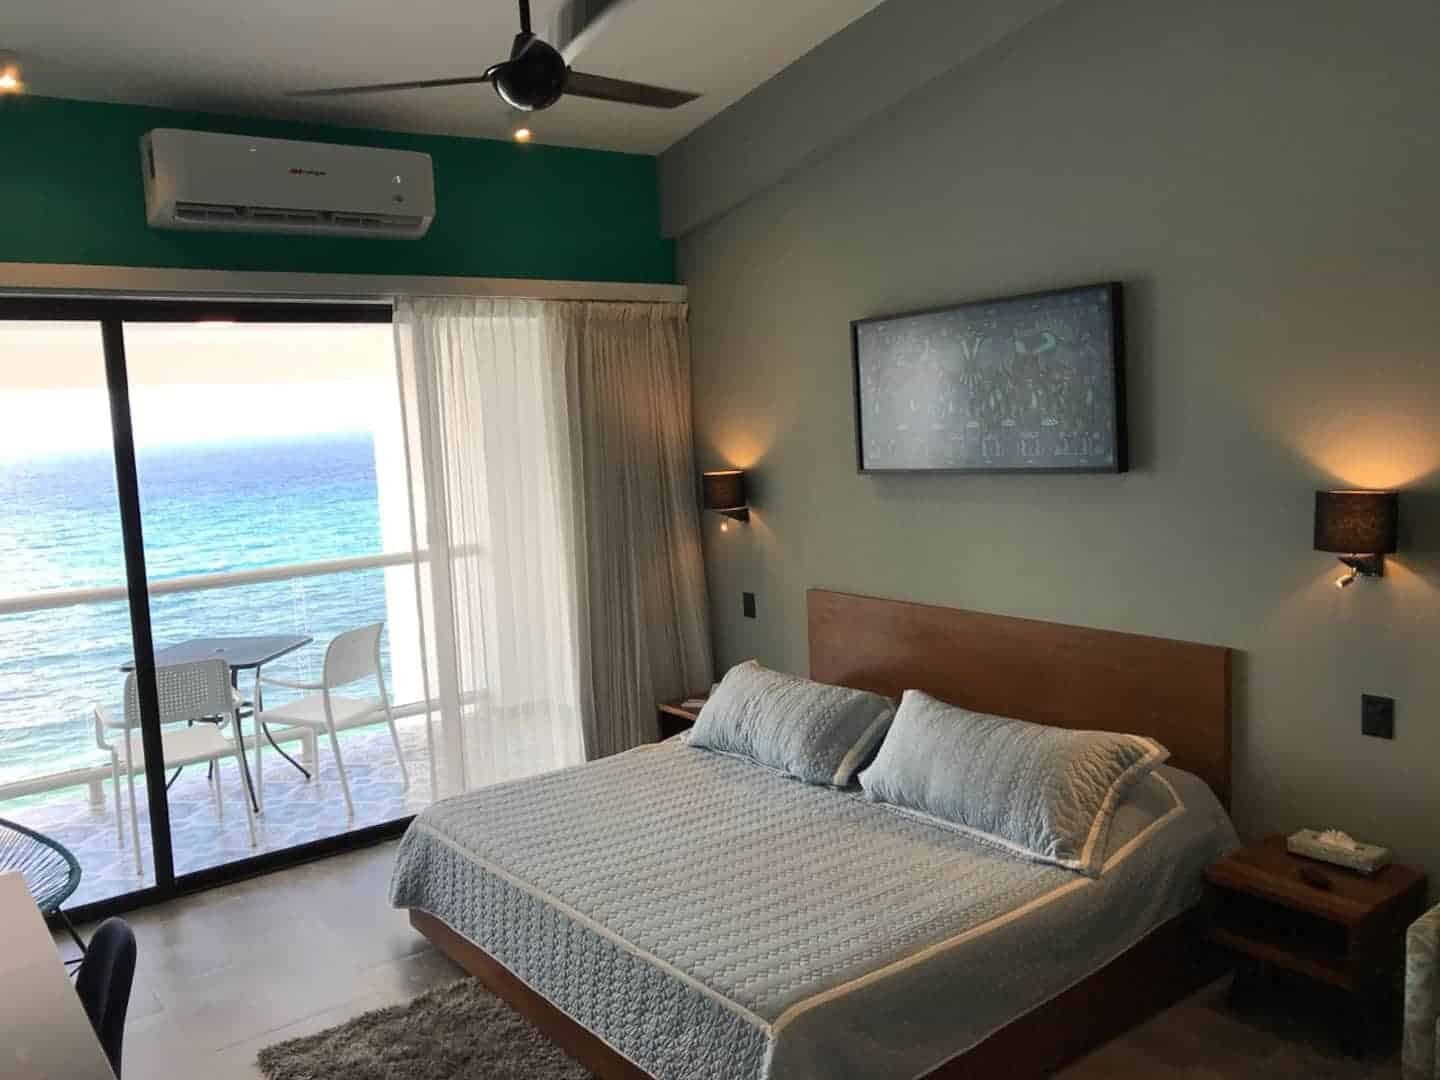 Image of Airbnb rental in Cancun, Mexico